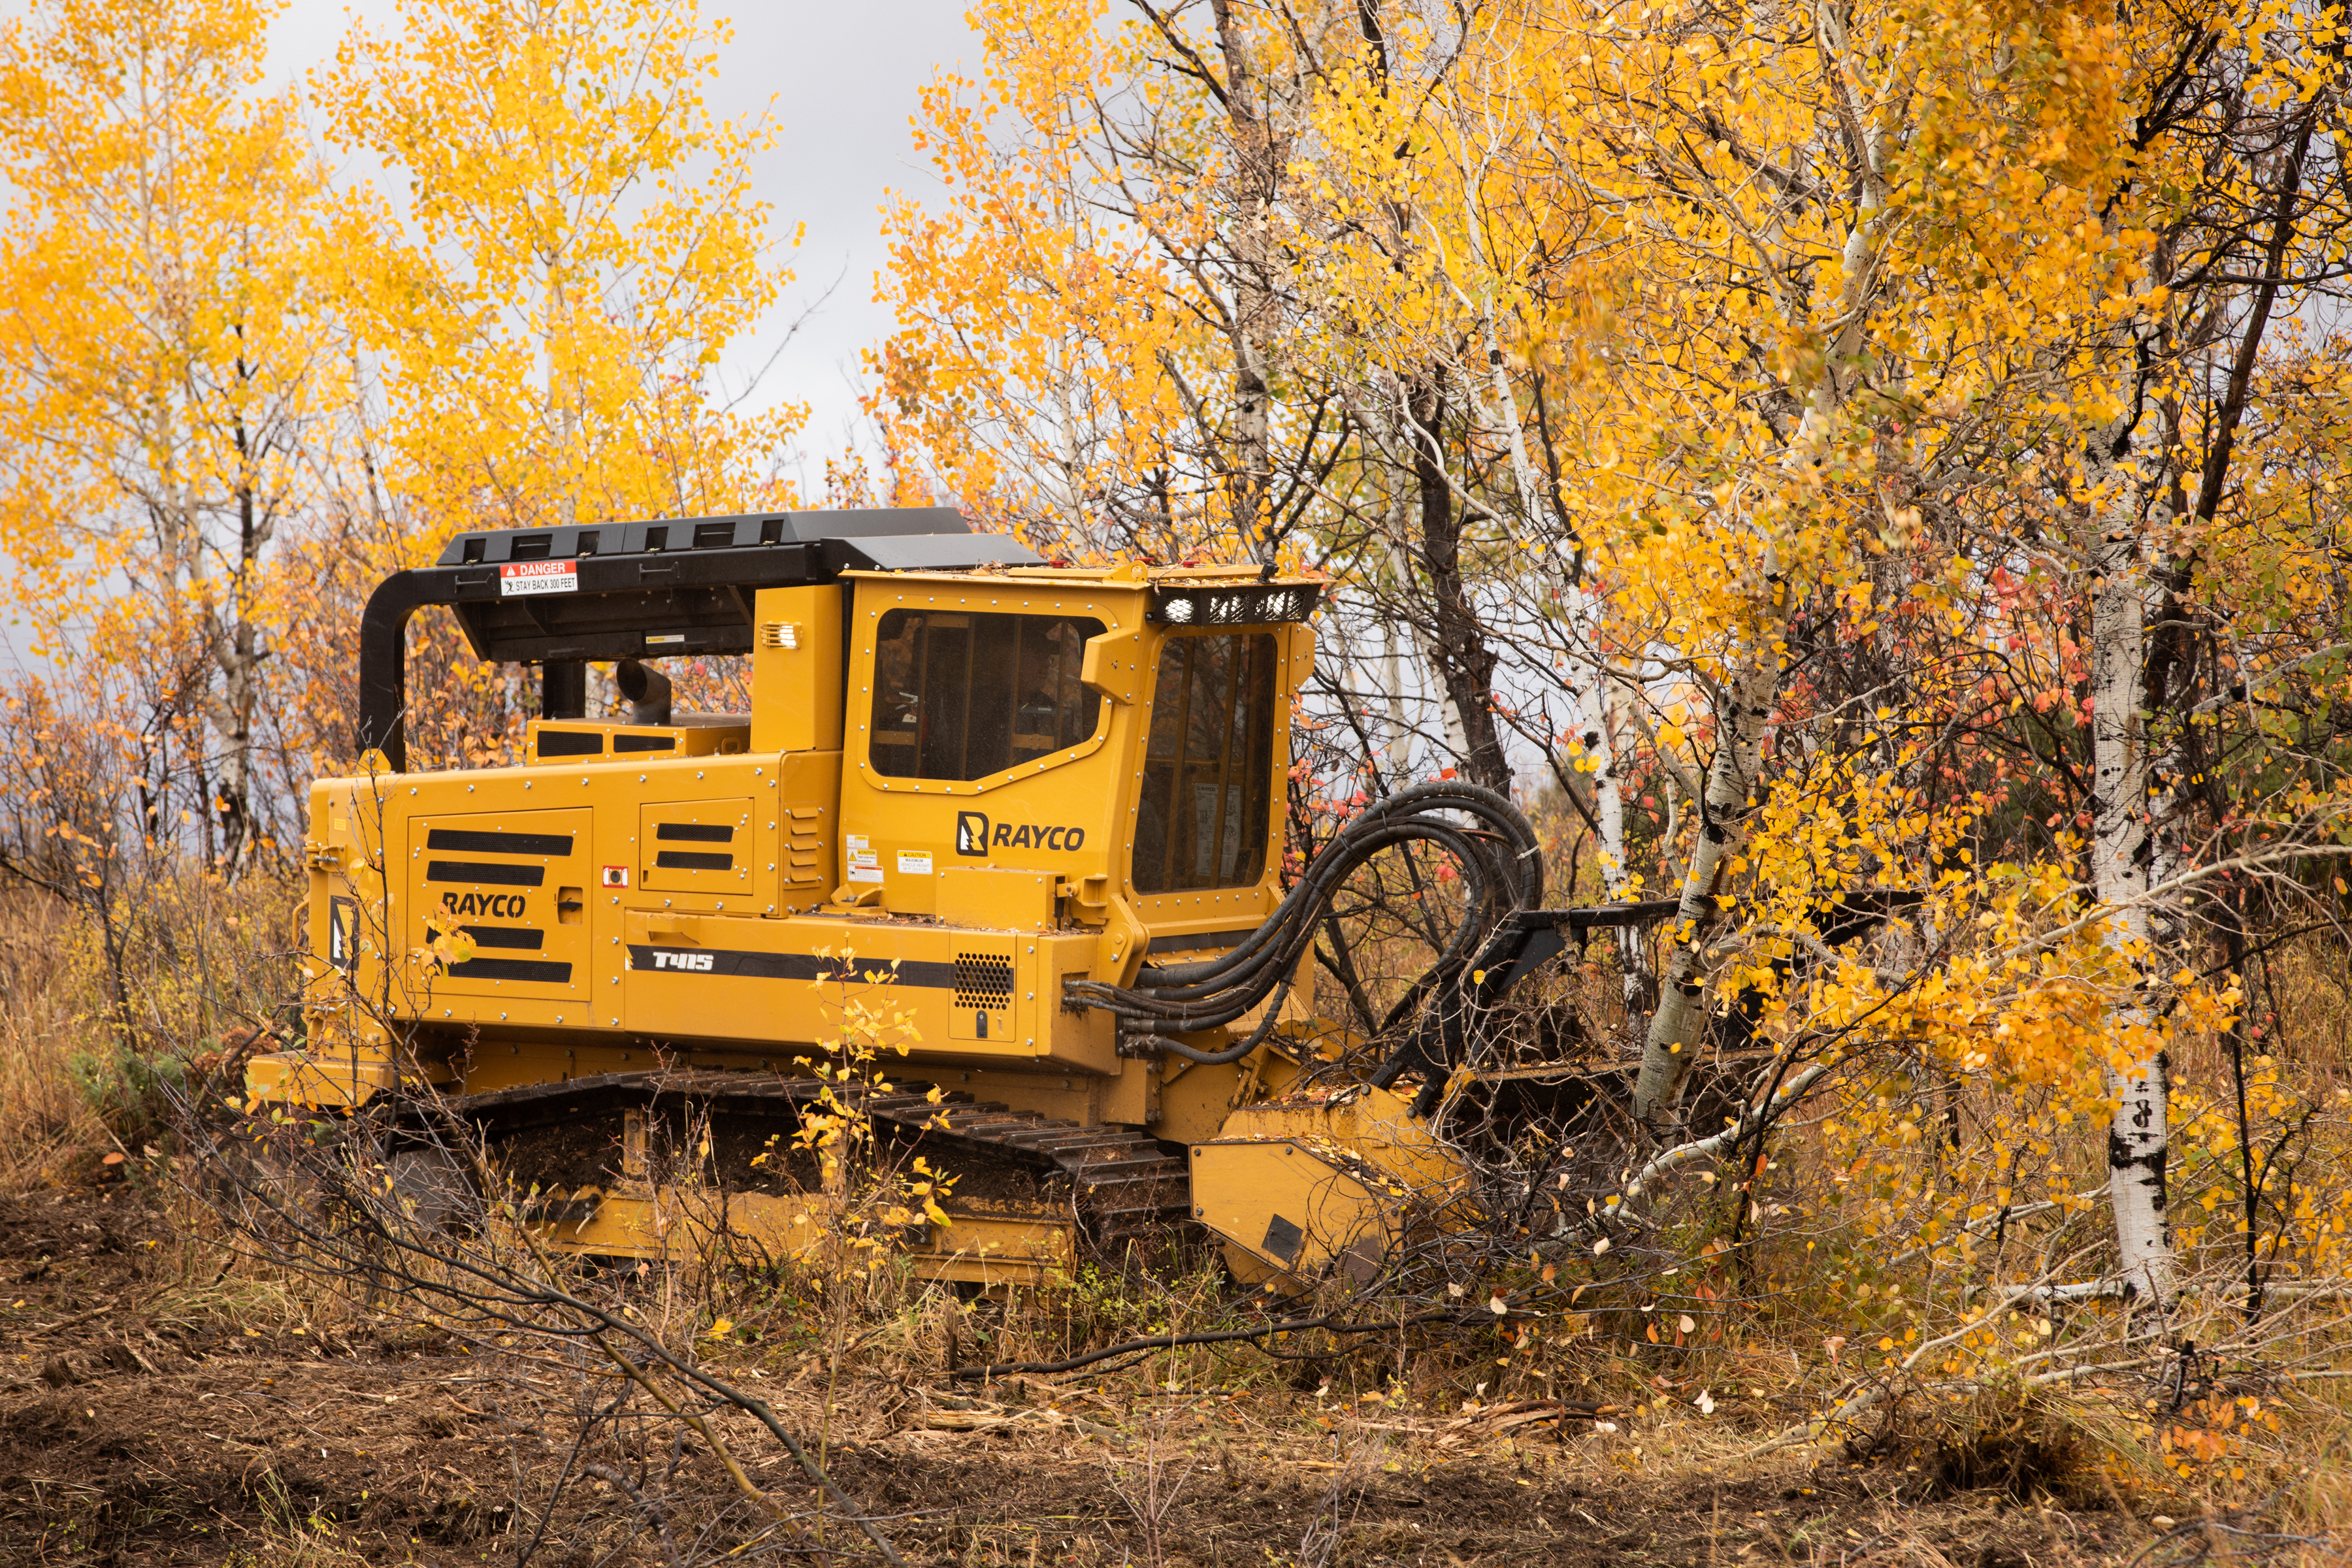 Morbark introduces new Rayco forestry mulcher and Hydra